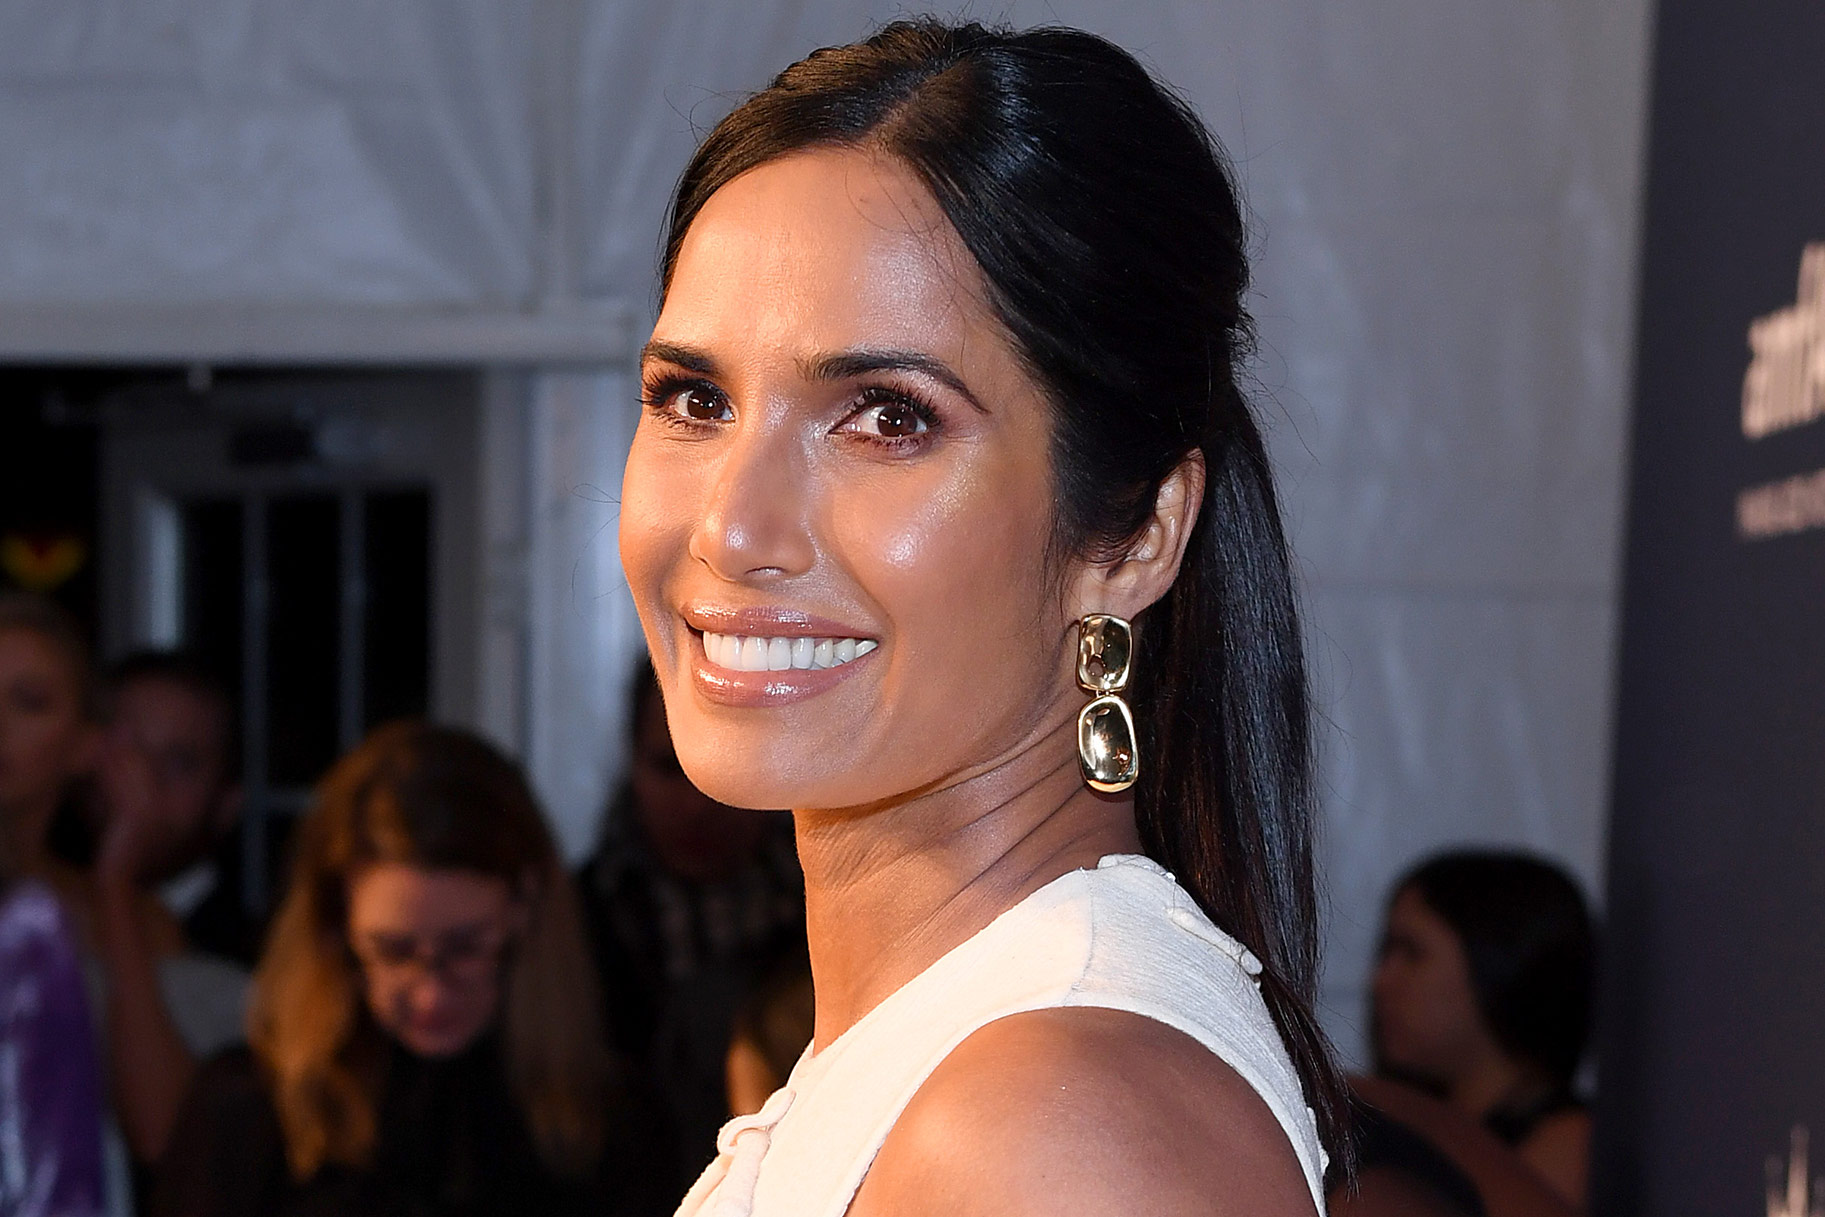 Padma Lakshmi Top Chef Bangs